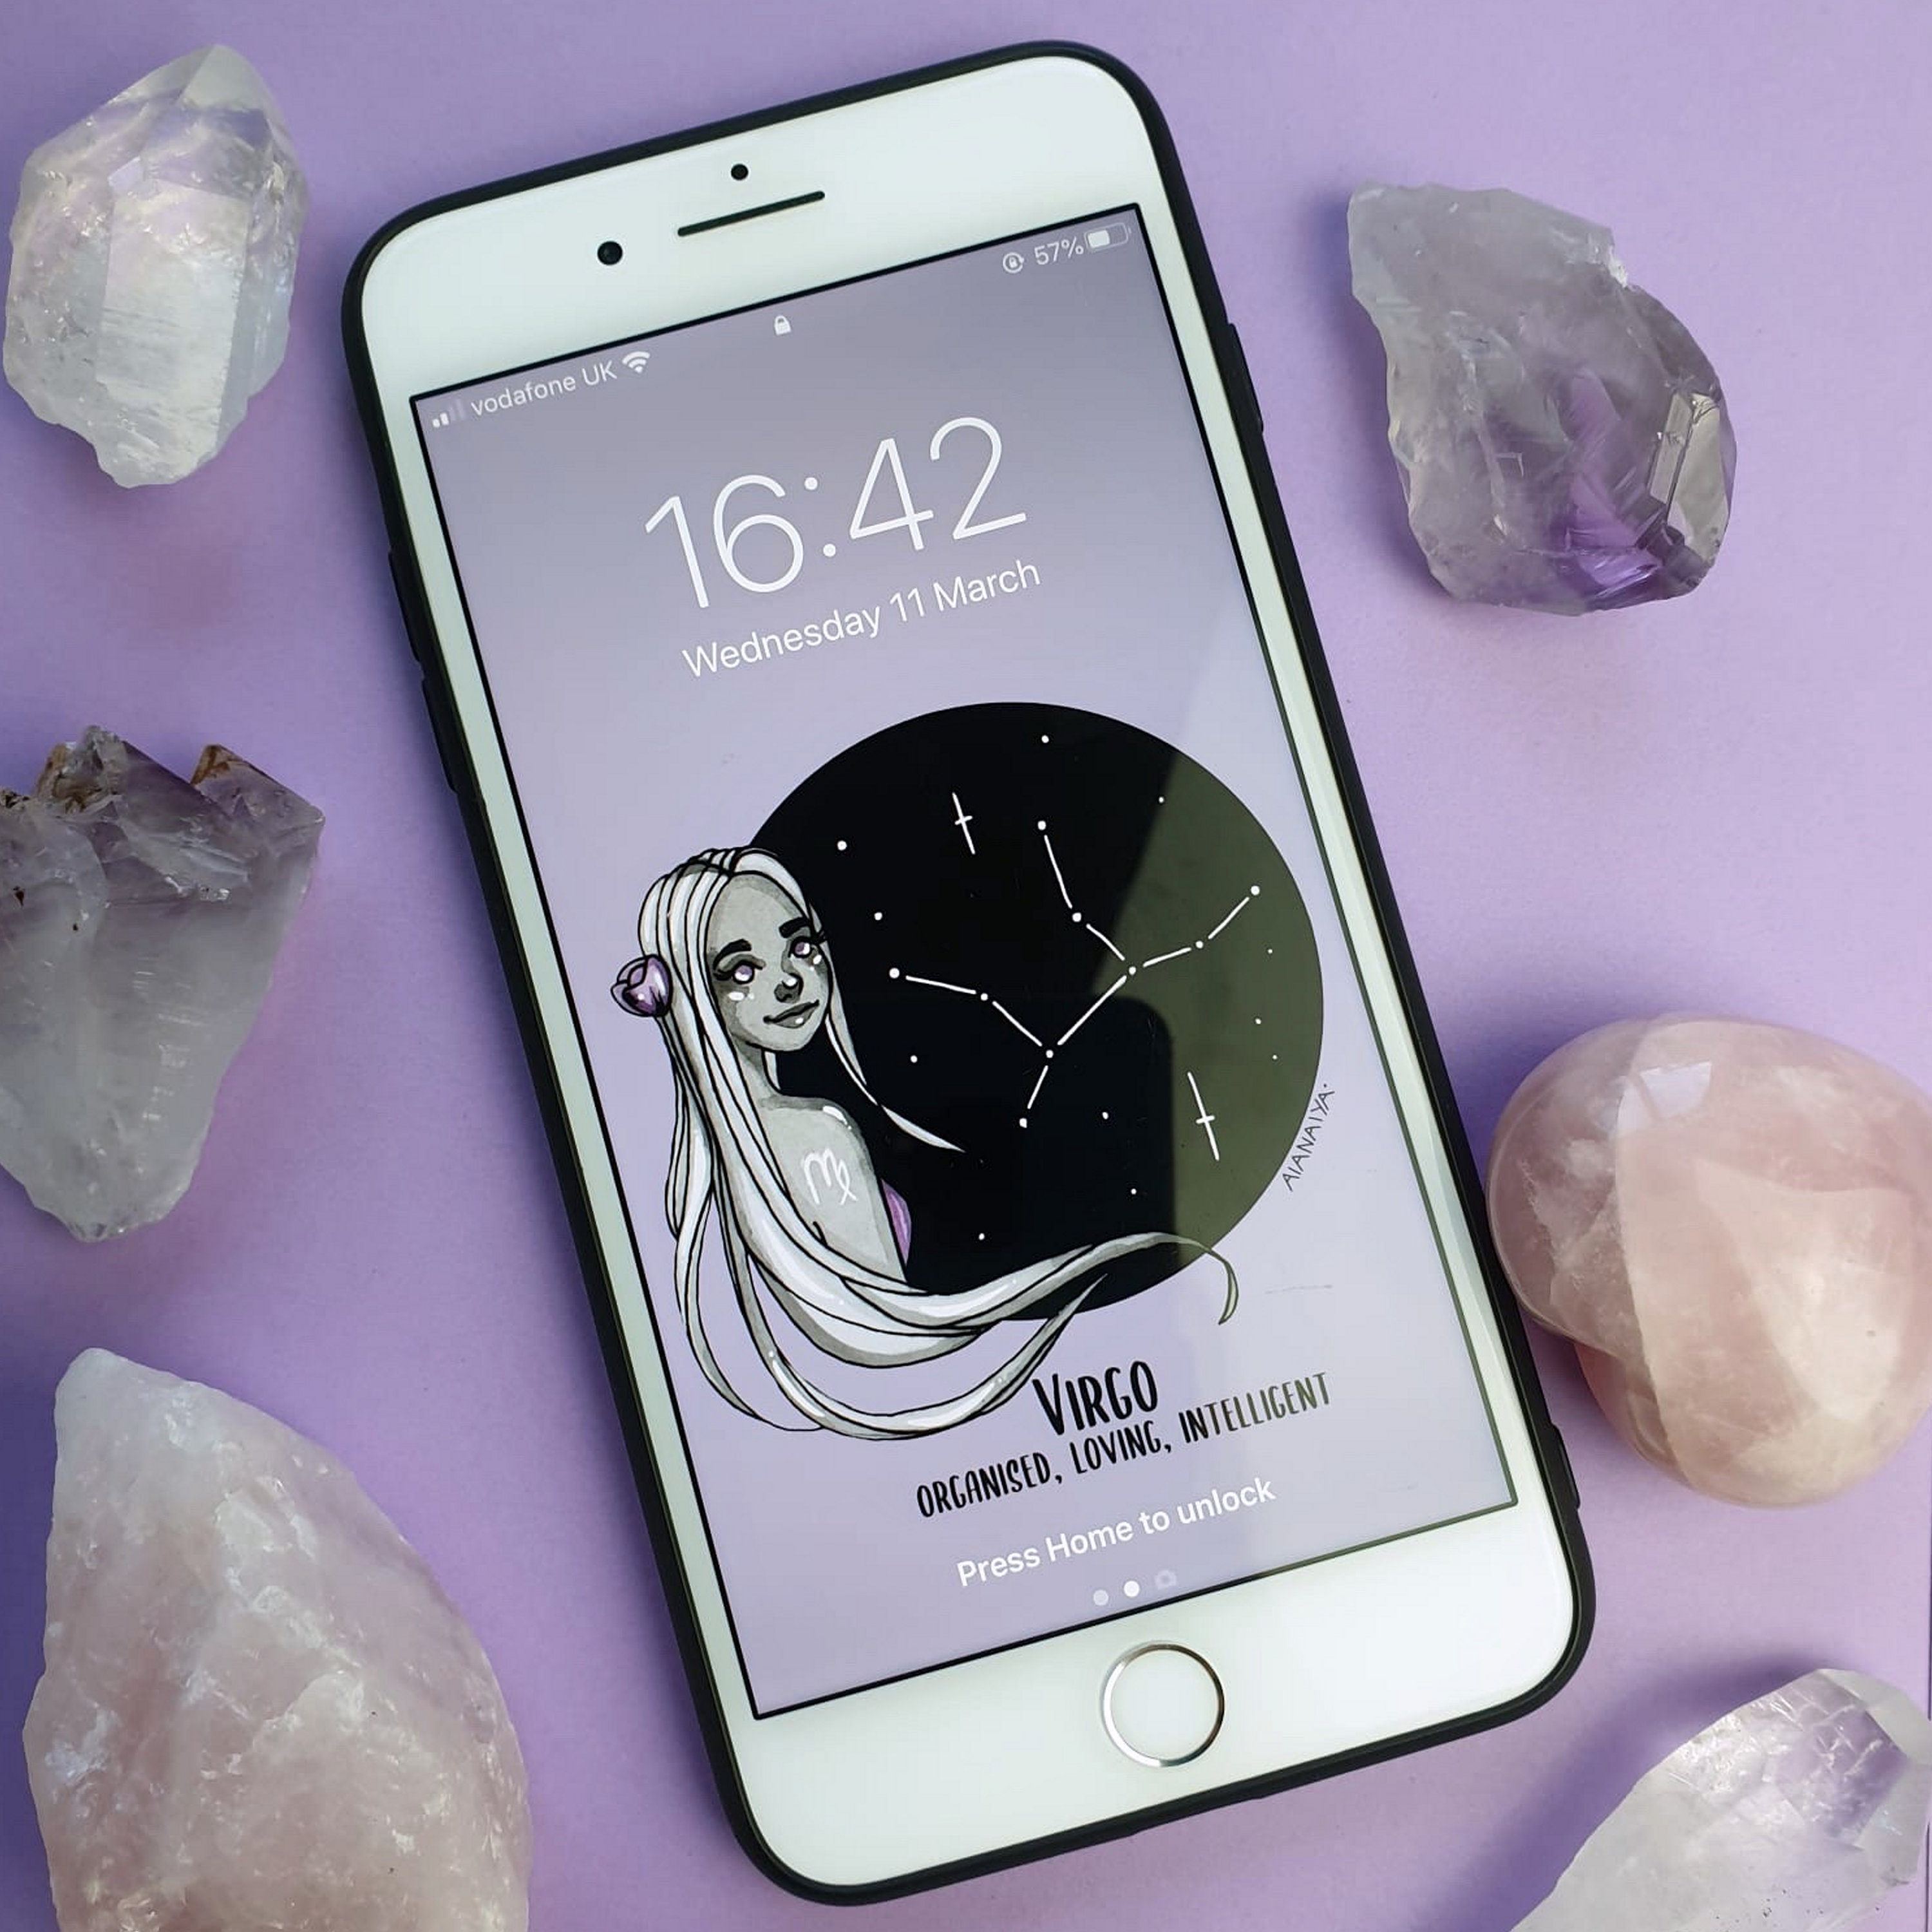 Witchy Phone Wallpapers posted by Ethan Sellers